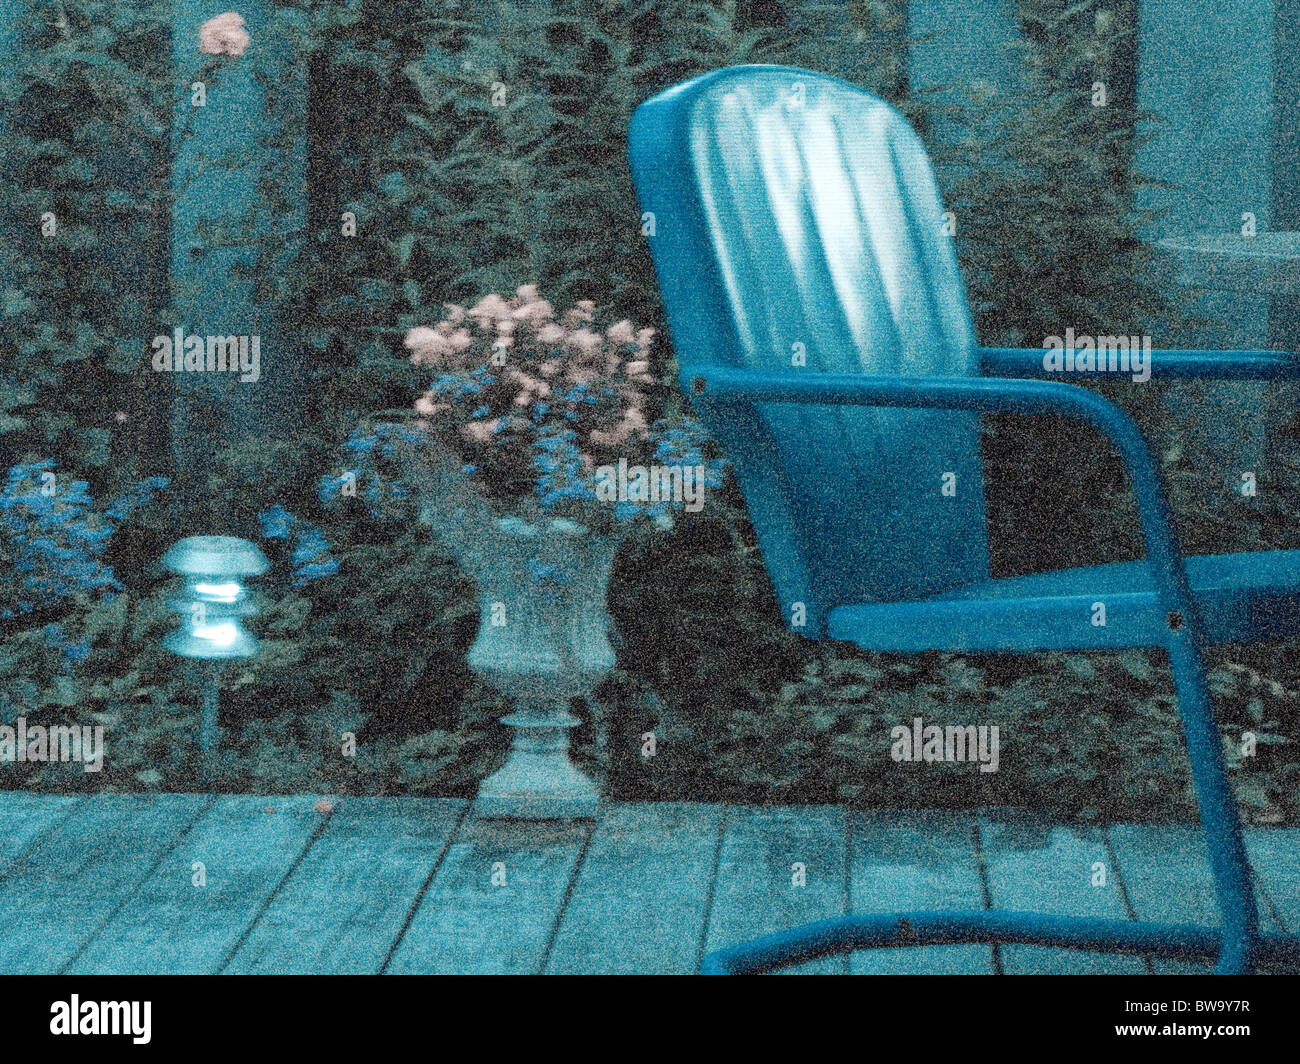 grainy shot of old blue chair with flowers on wood deck. - Stock Image